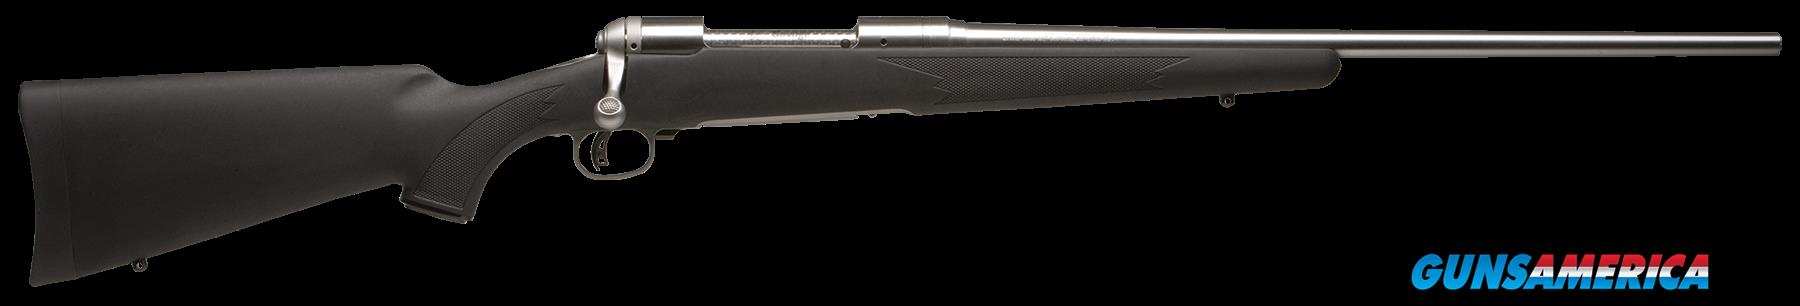 "Savage 19145 16/116 FCSS Bolt 6.5 Creedmoor 22"" 4+1 Accustock Black Stk Stainless Steel  Guns > Rifles > S Misc Rifles"